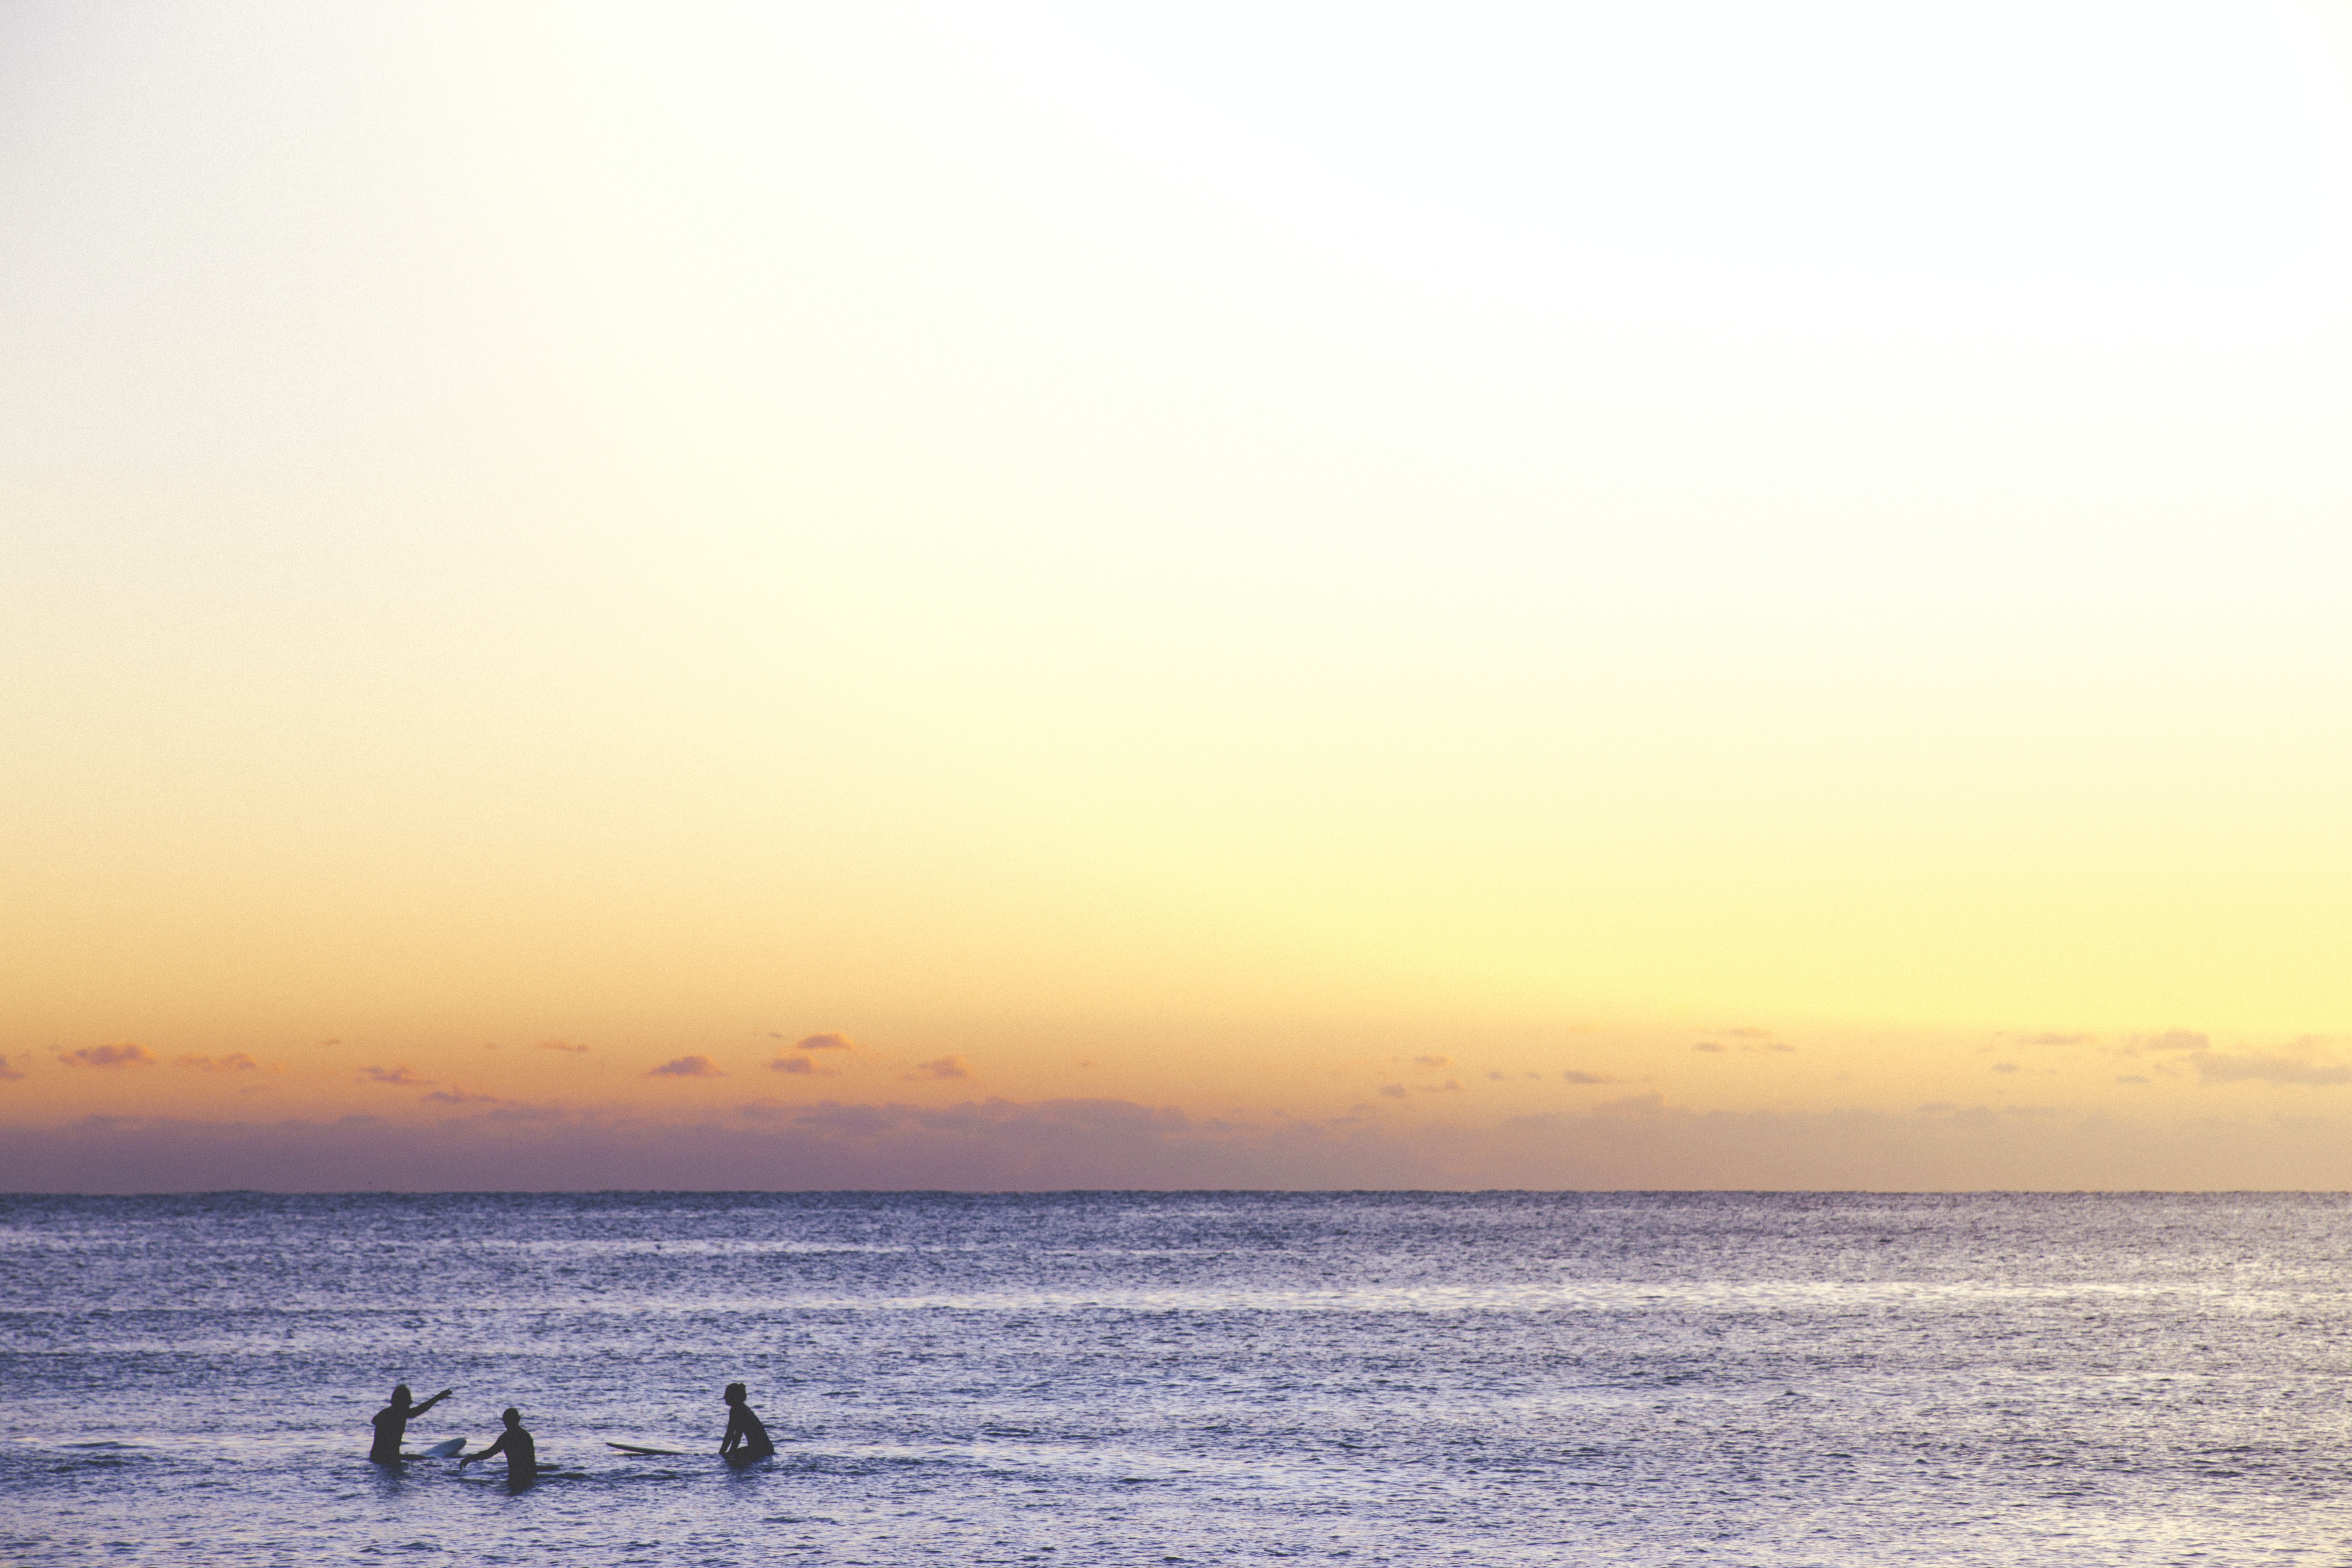 3 people in the calm, shallow sea at Sydney Beach, beneath a beautiful orange and purple sunset sky